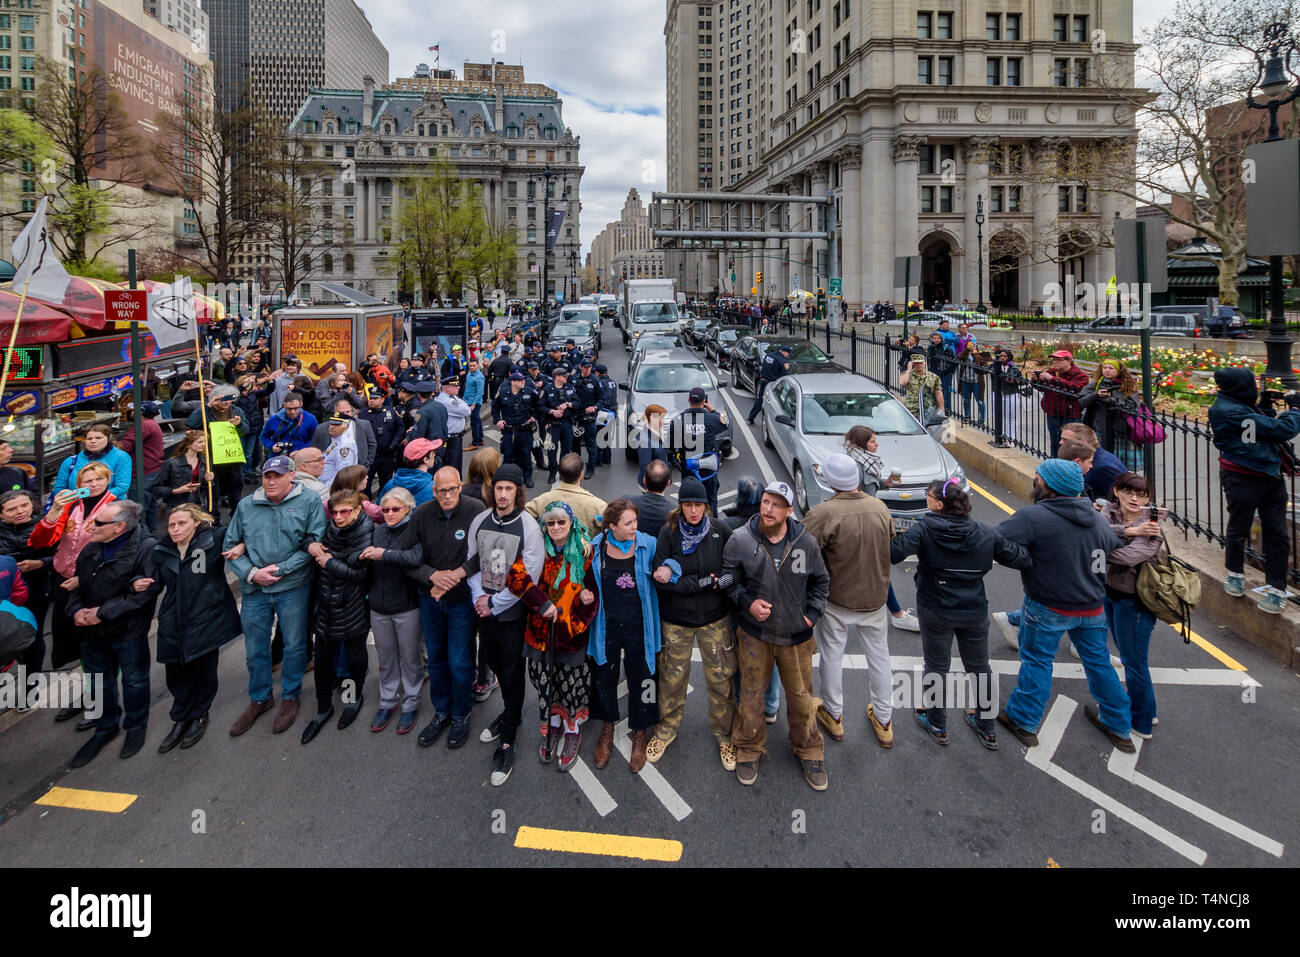 """New York, USA. 17th Apr, 2019. New York, United States. 17th Apr, 2019. Activists from Extinction Rebellion New York City (XR-NYC) engaged in nonviolent direct action to confront climate change outside City Hall on April 17, 2019, demanding a declaration of Climate Emergency and the pursuit of policies to reach zero emissions in the city by 2025. The Extinction Rebellion (XR) movement held similar actions in 38 cities in the U.S. and 49 countries globally, during """"International Rebellion Week"""". Credit: Erik McGregor/Pacific Press/Alamy Live News Stock Photo"""